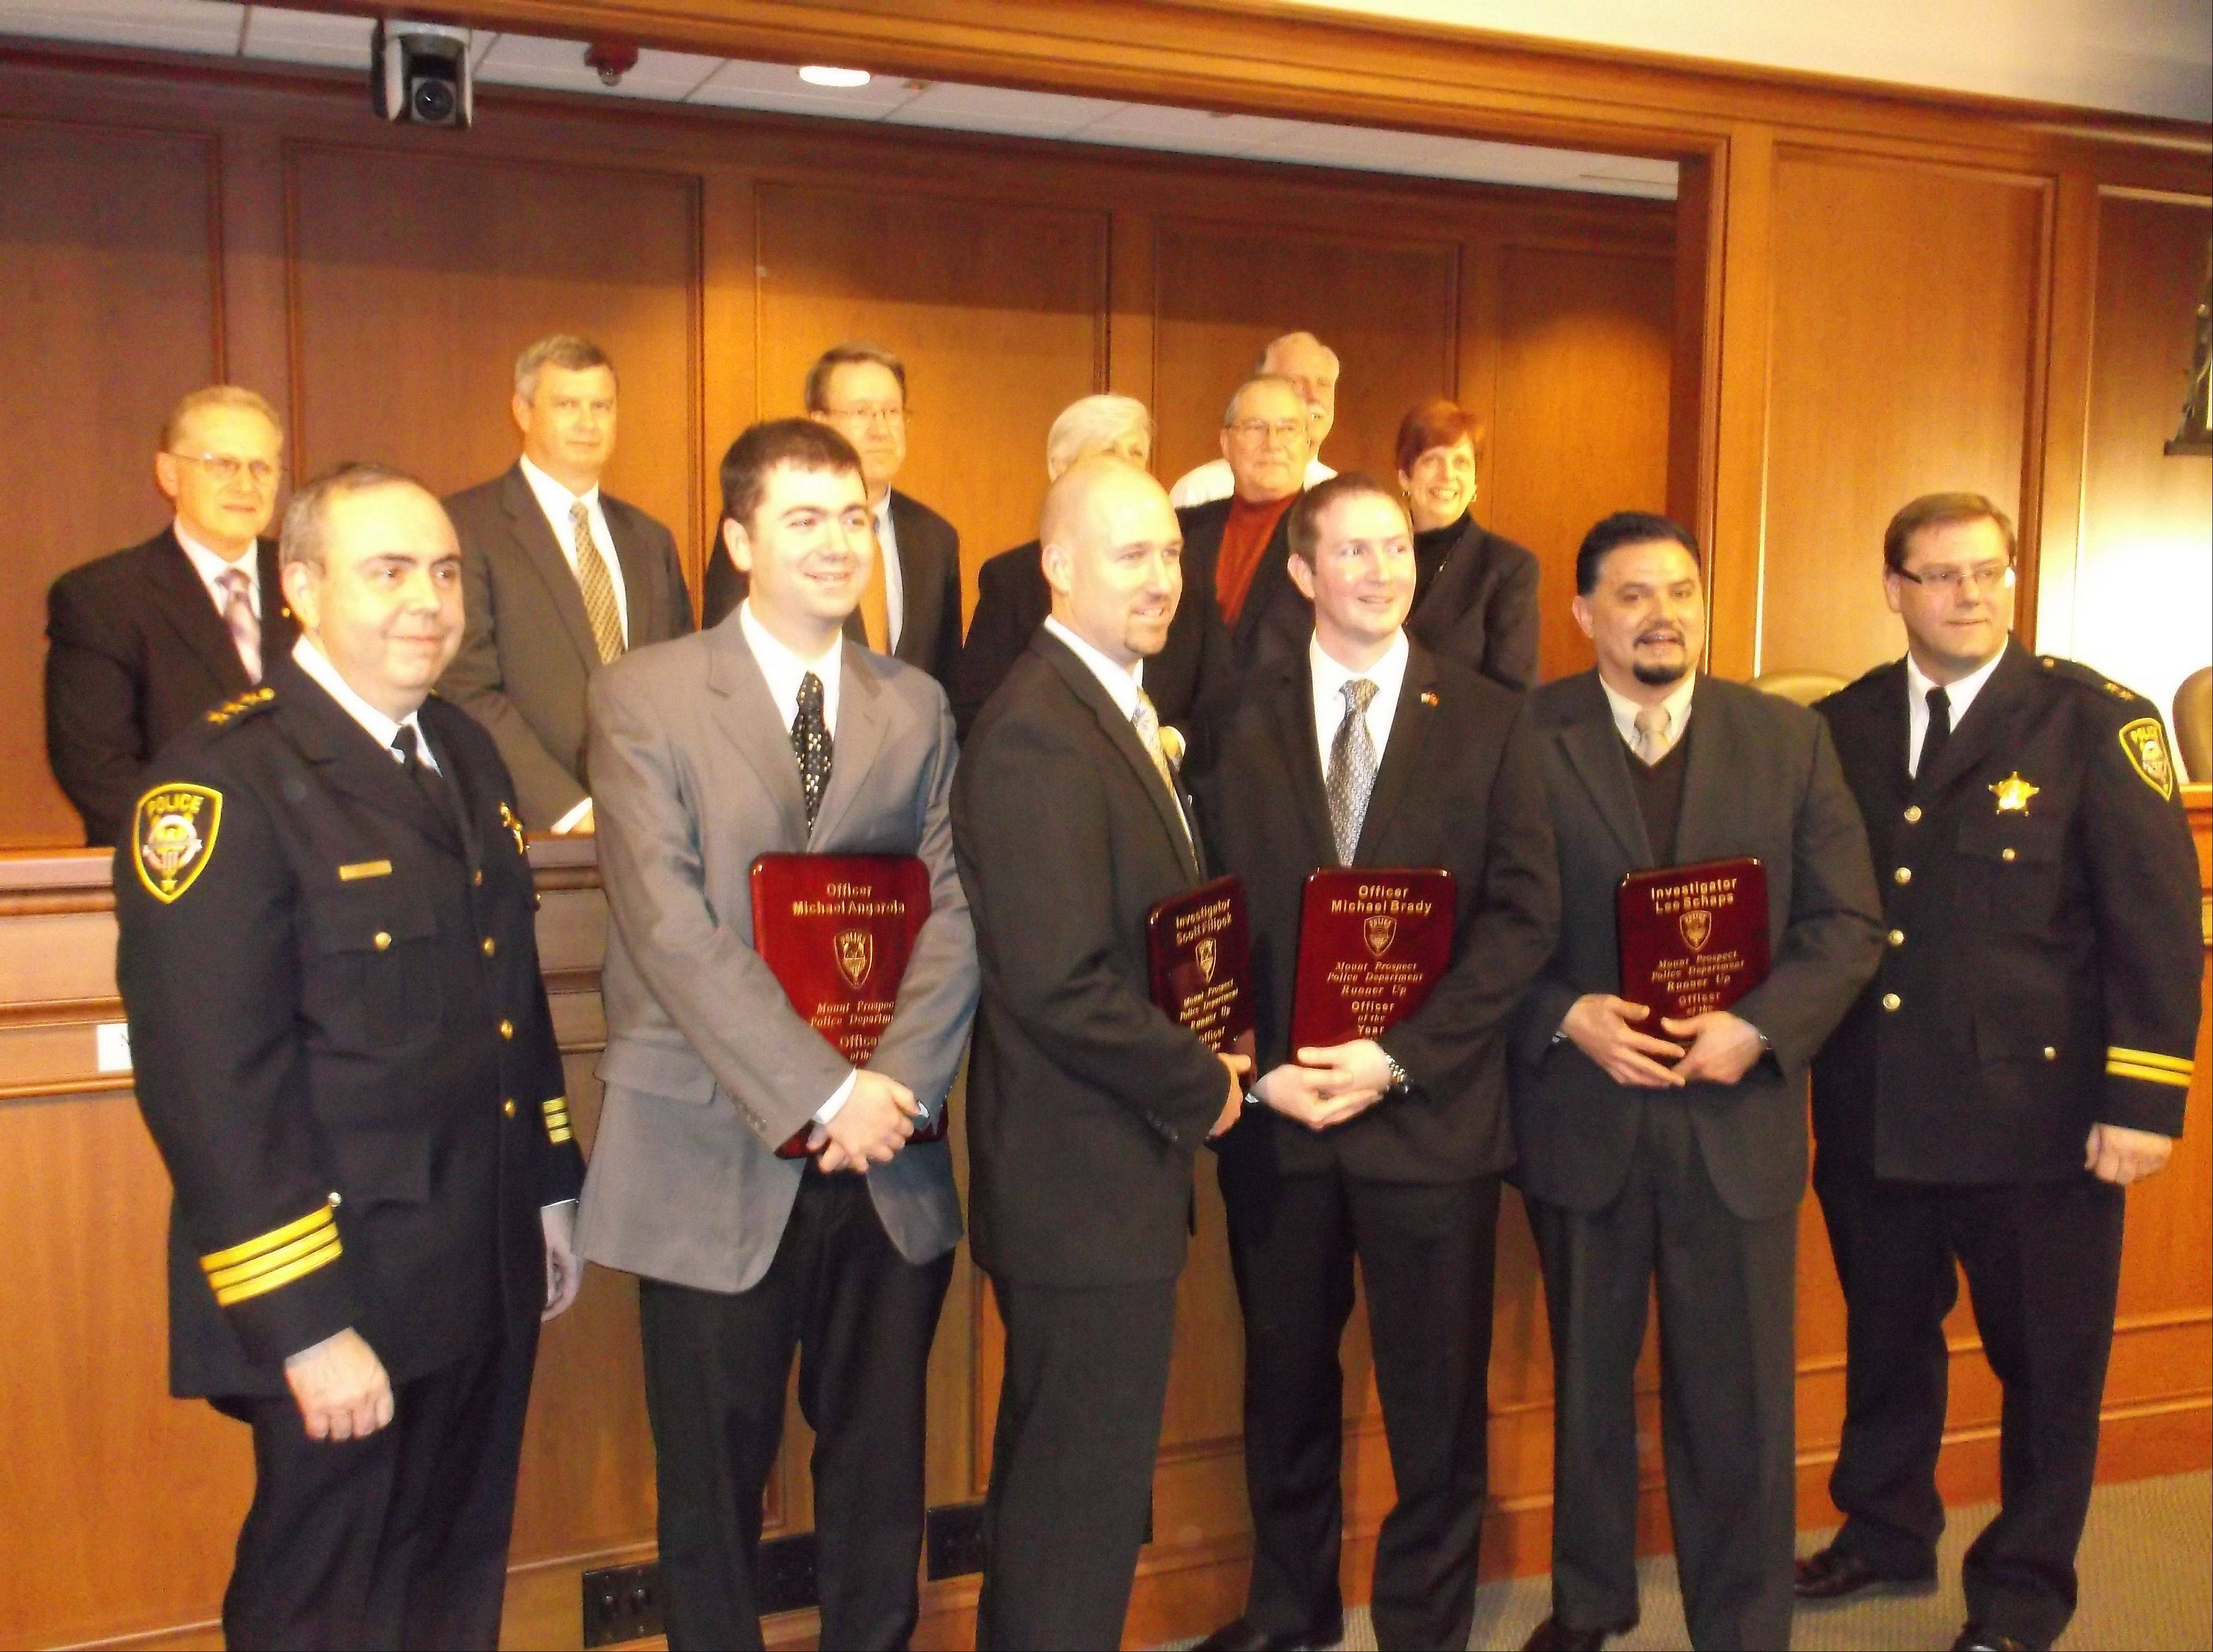 The Mount Prospect Village Board, rear, poses with the officers of the year. In the front row from right are police Chief Mike Semkiu, officers Michael Angarola, Scott Filipek, Michael Brady, Lee Schaps and Deputy Chief Tim Janowick.